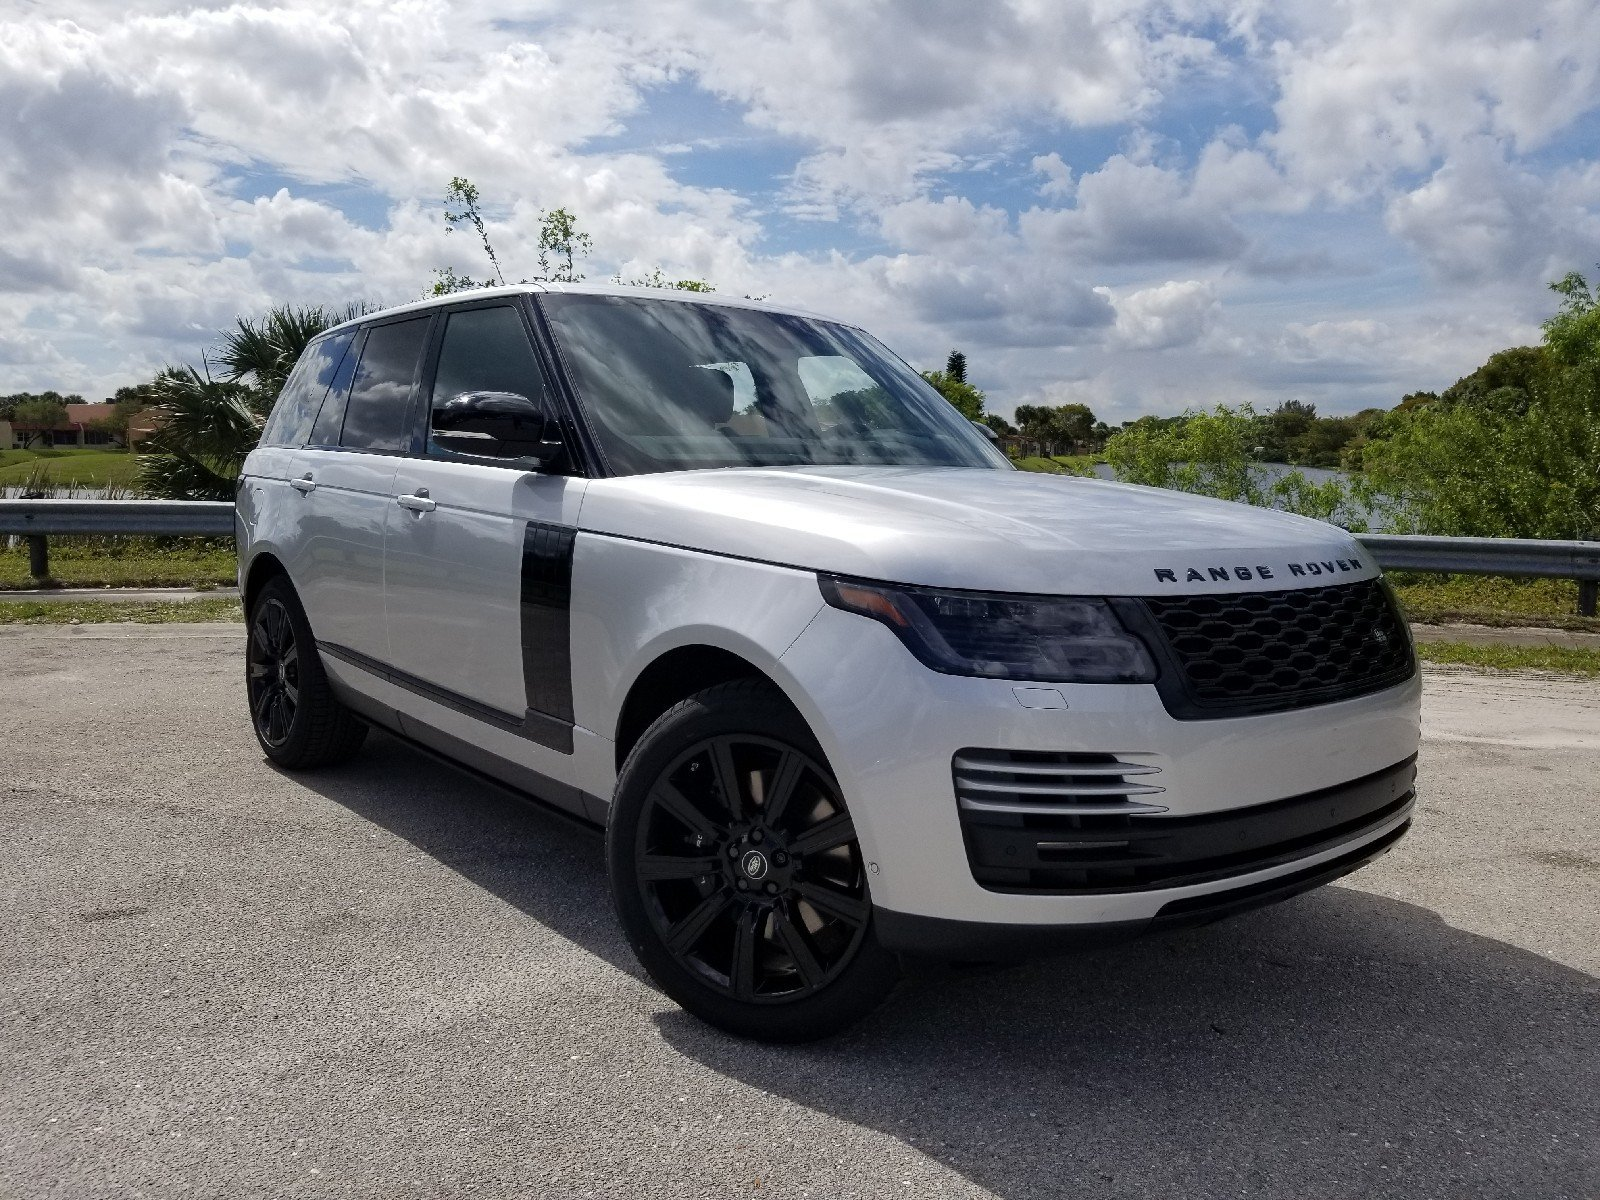 New 2019 Land Rover Range Rover 5 0L V8 Supercharged